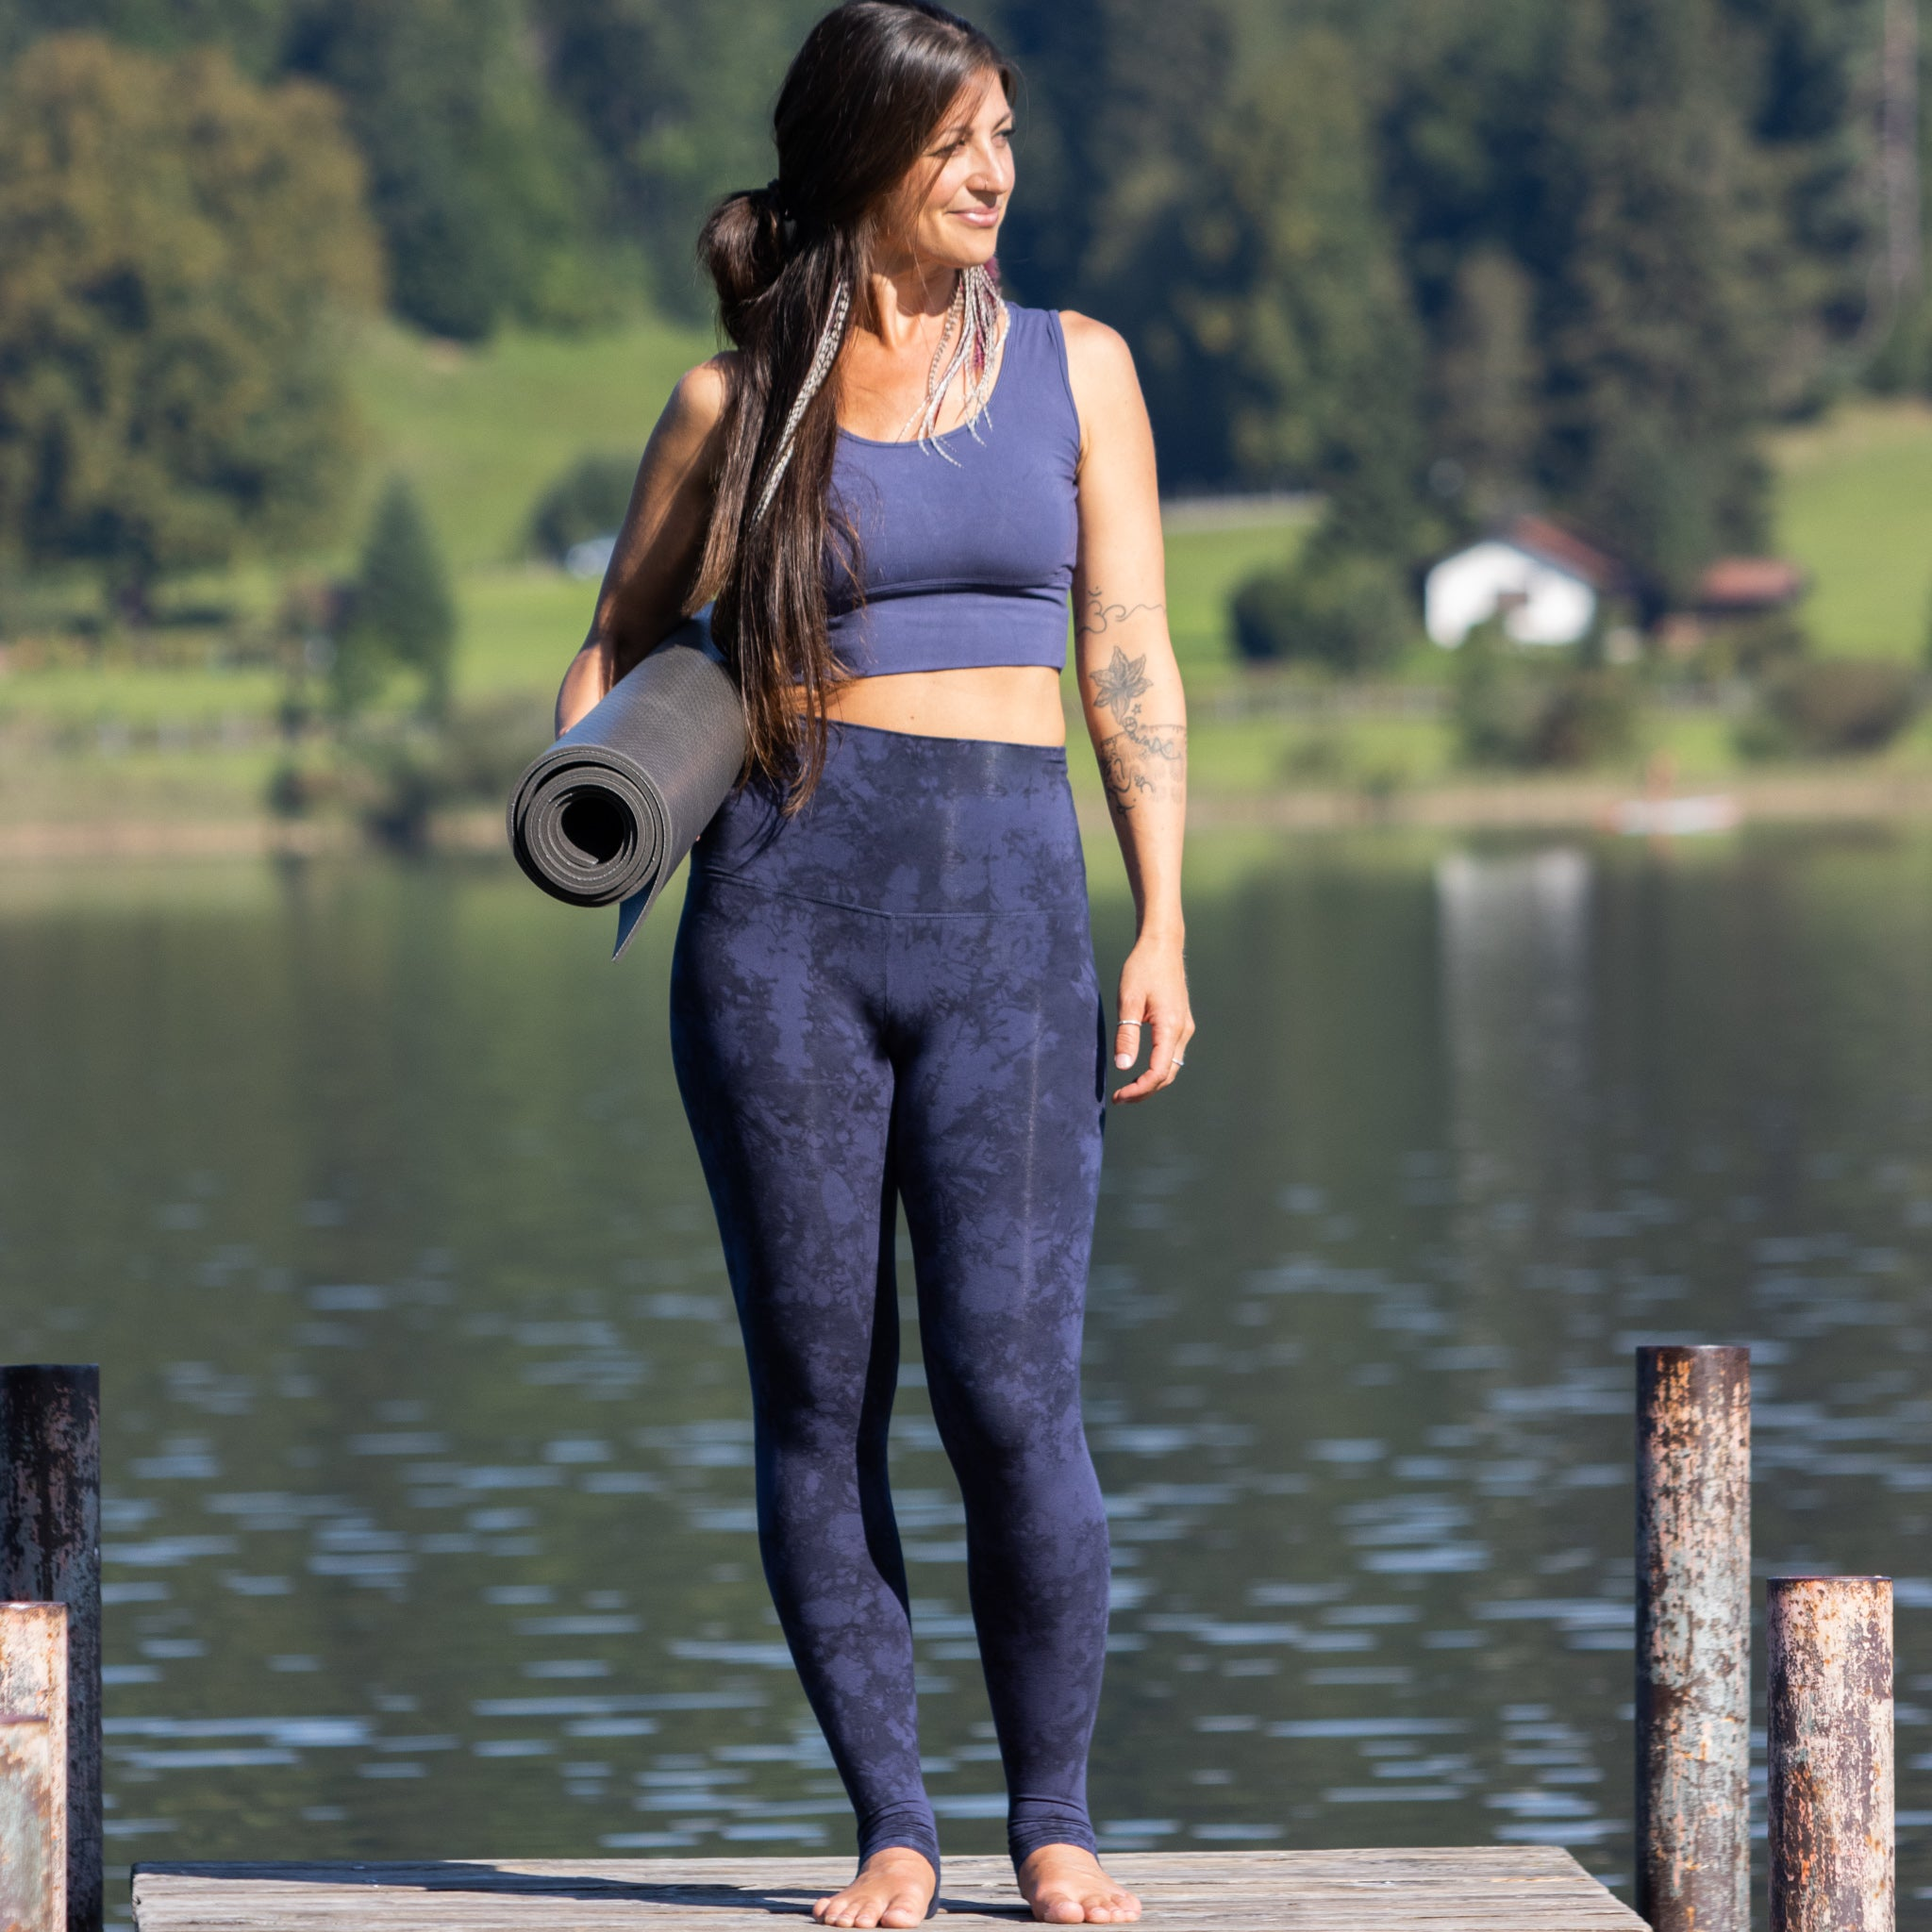 Nightblue Leggings